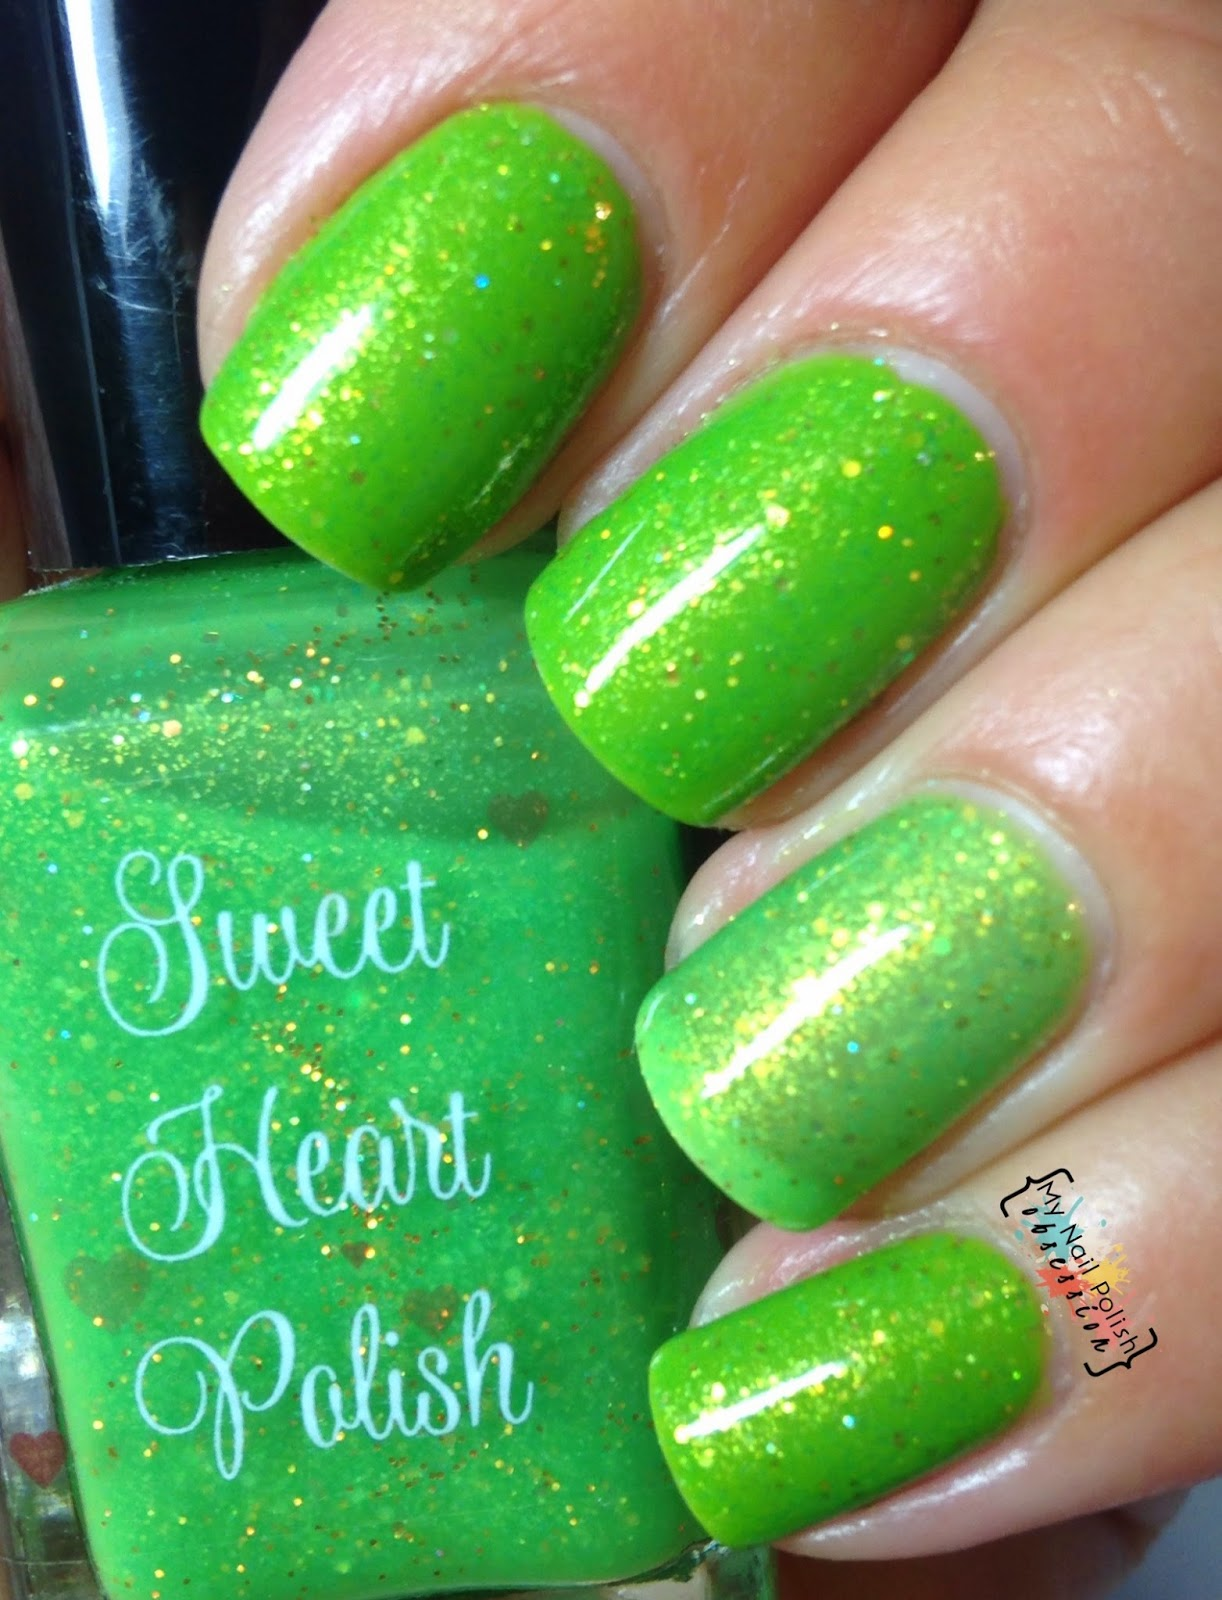 Sweet Heart Polish Oh Look, A Firefly!